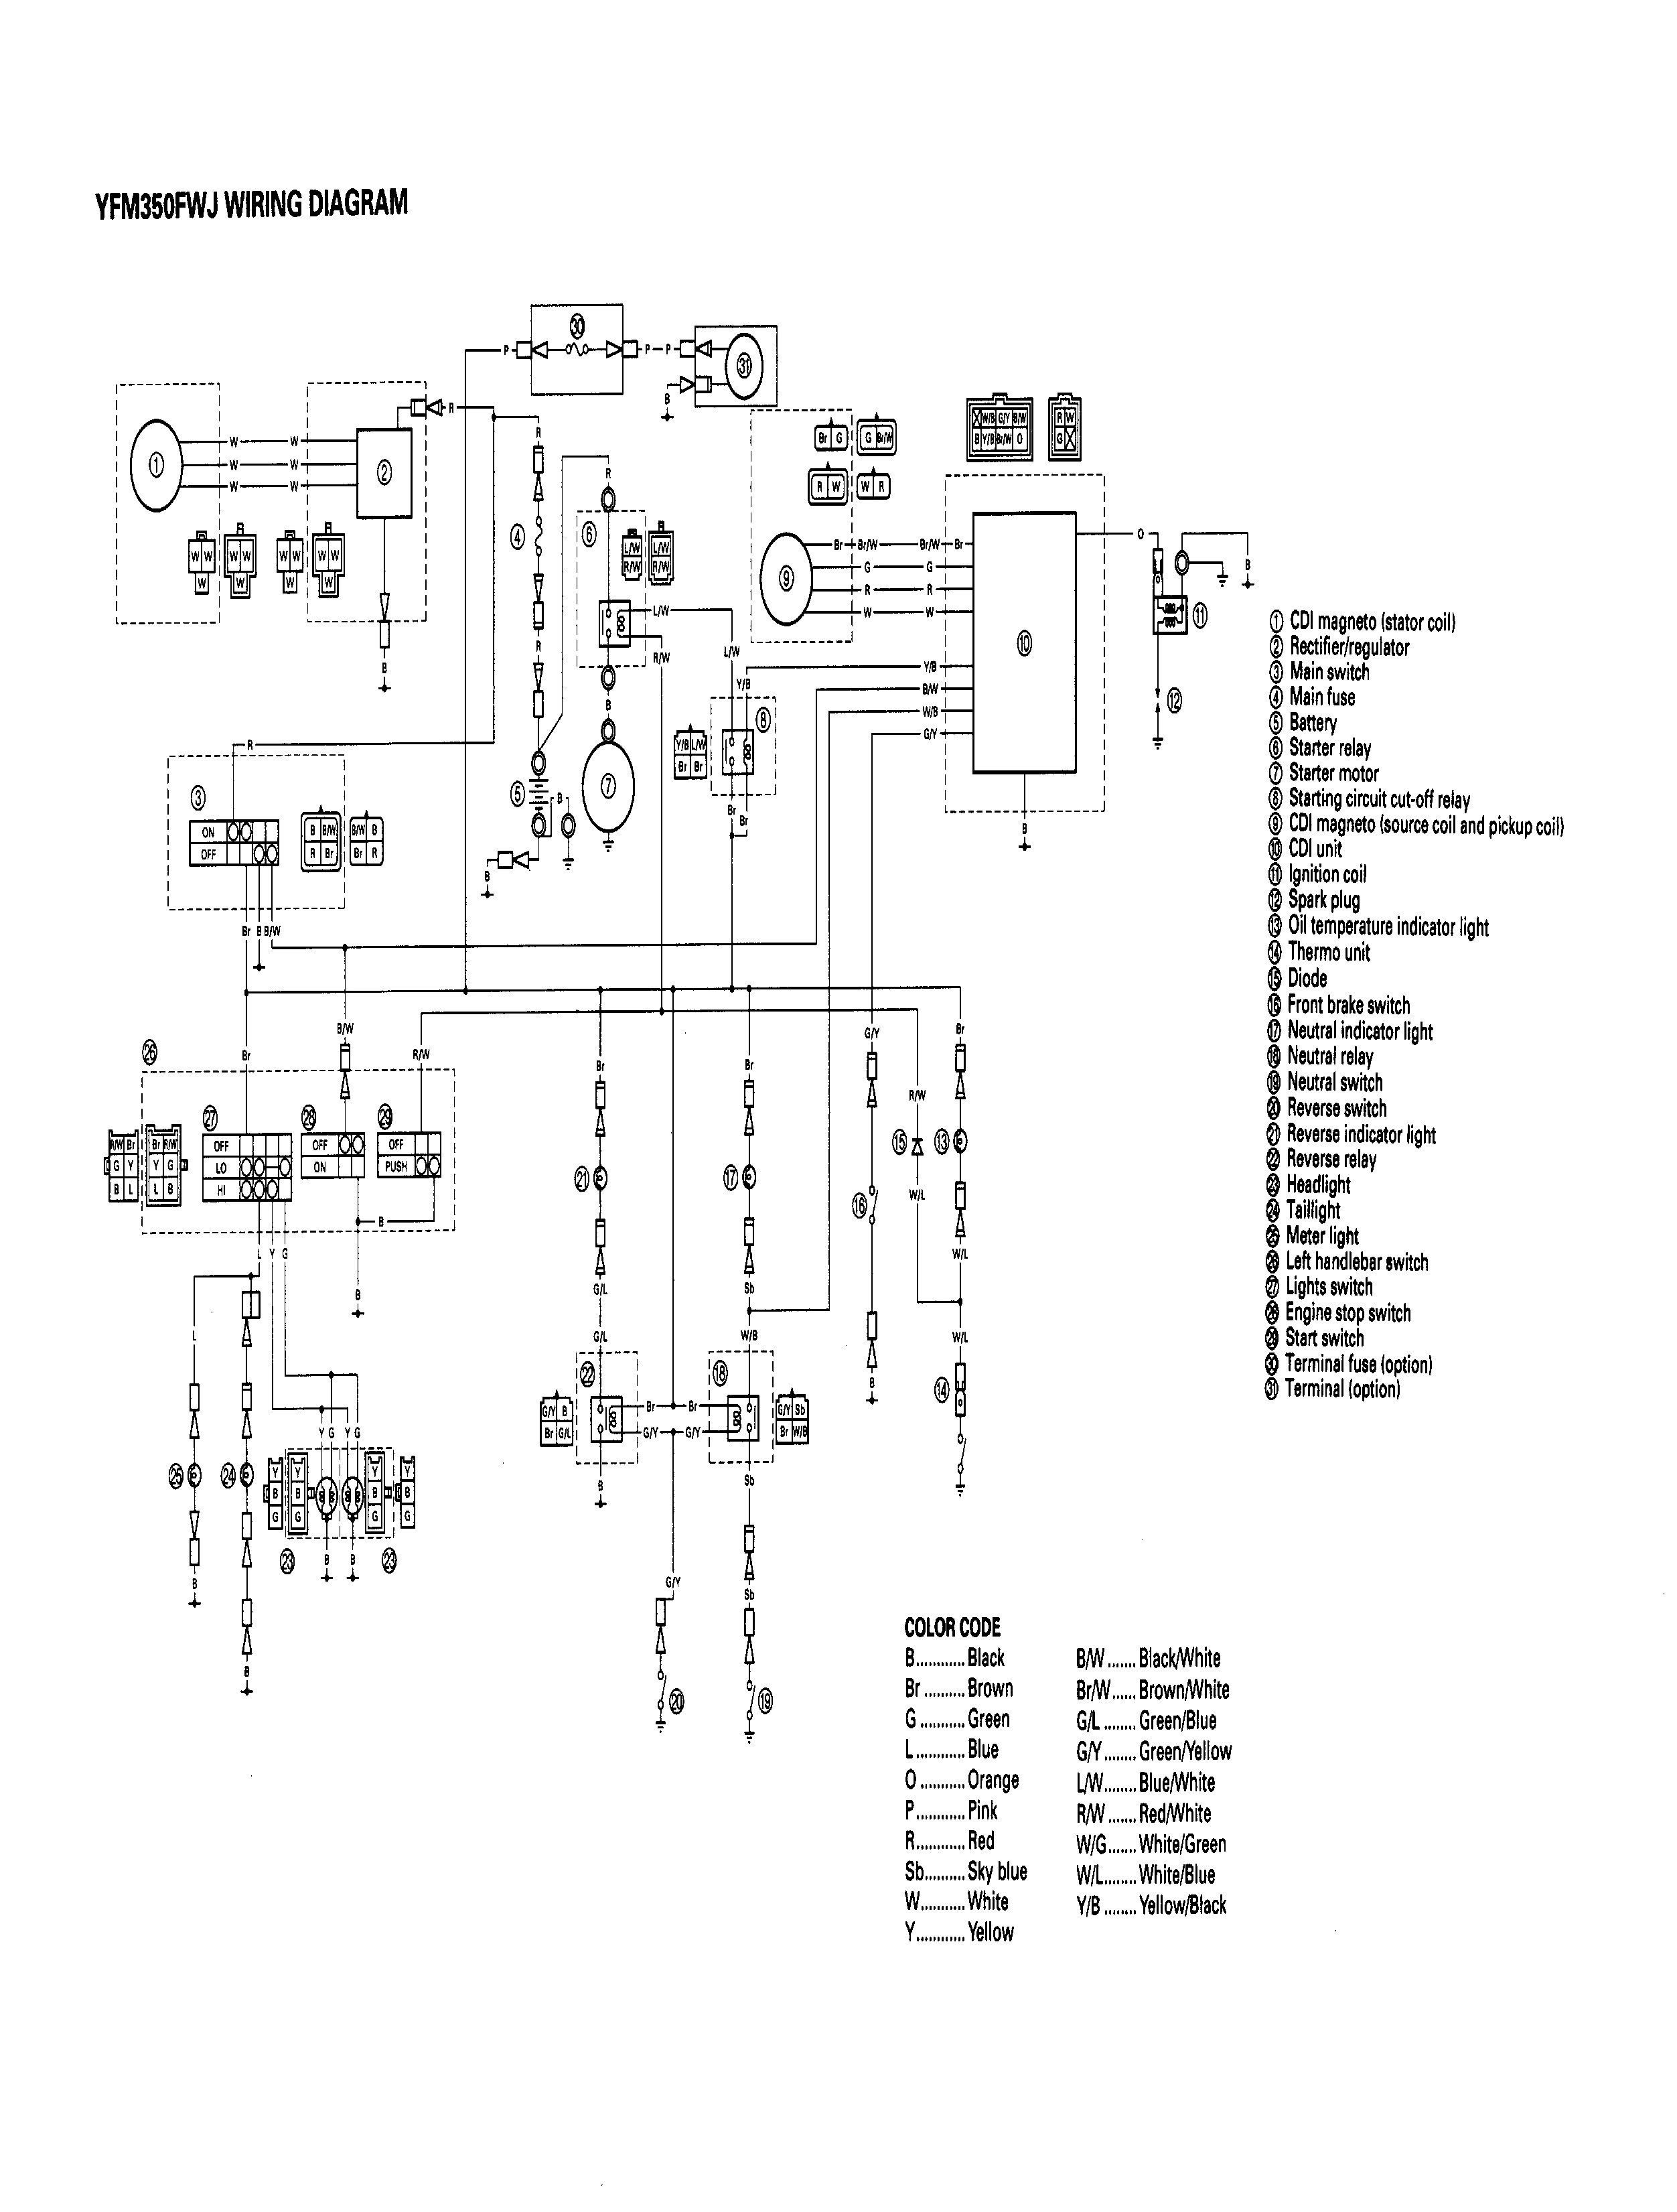 yamaha raptor 700 headlight wiring diagram photocell installation 1996 bigbear 350 4x4 grizzly atv forum